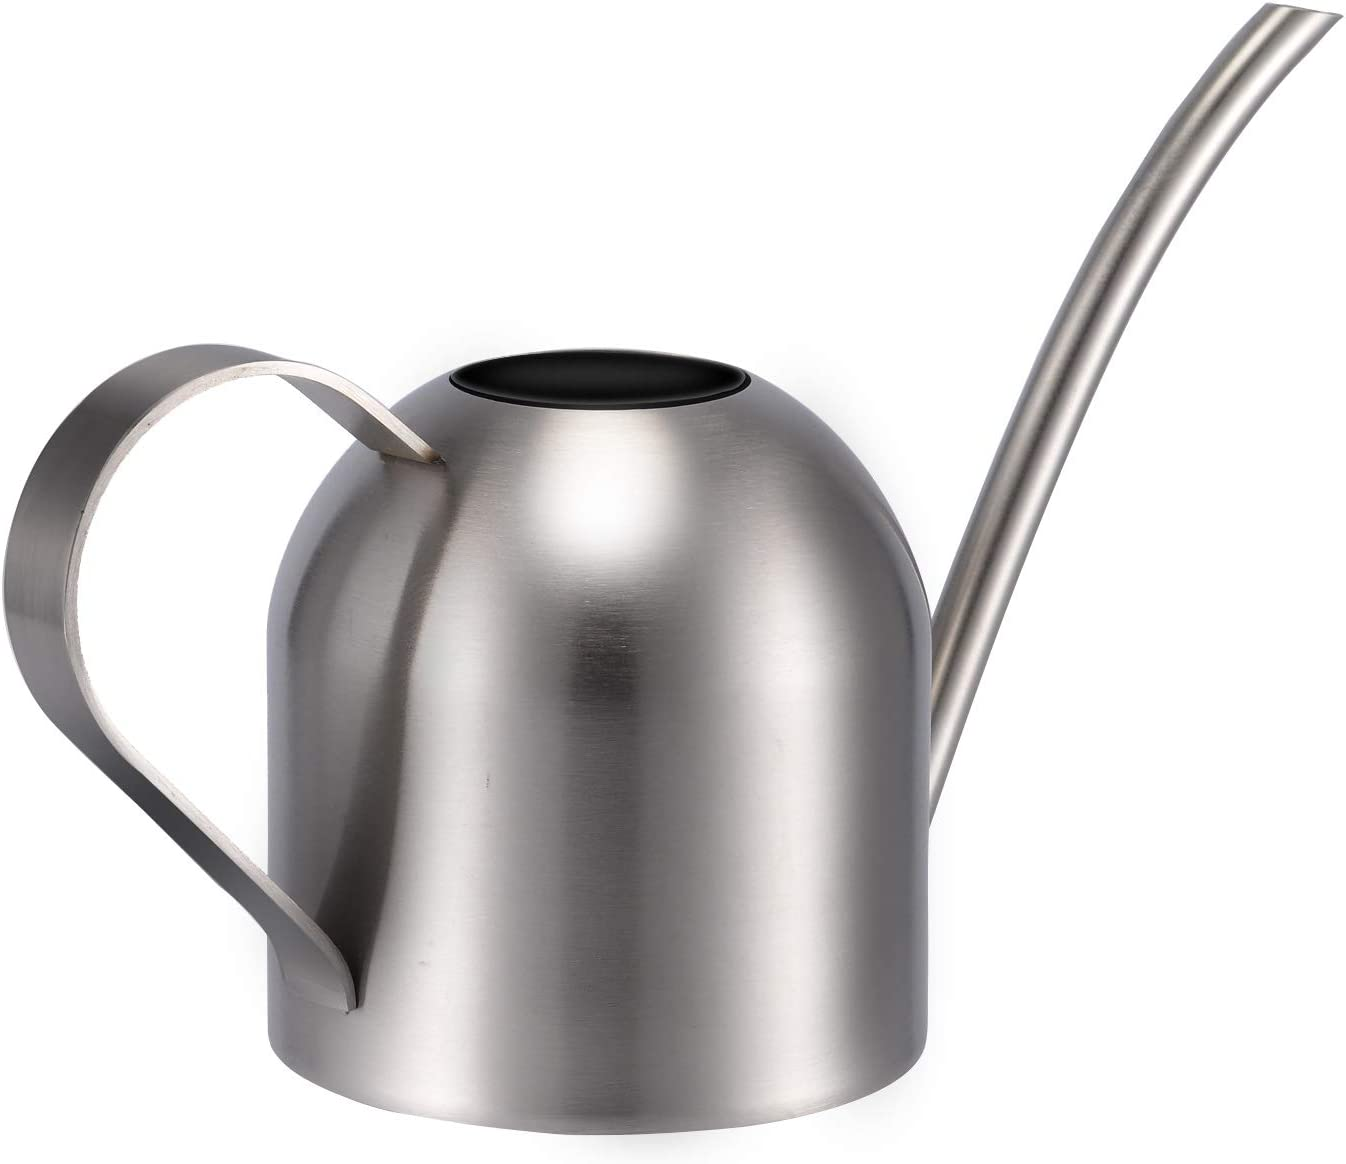 1500ml//53oz Gold Ridering Stainless Steel Watering Can,Resistant Scratches Metal Watering Pot with Long Spout for Outdoor and Indoor House Plants